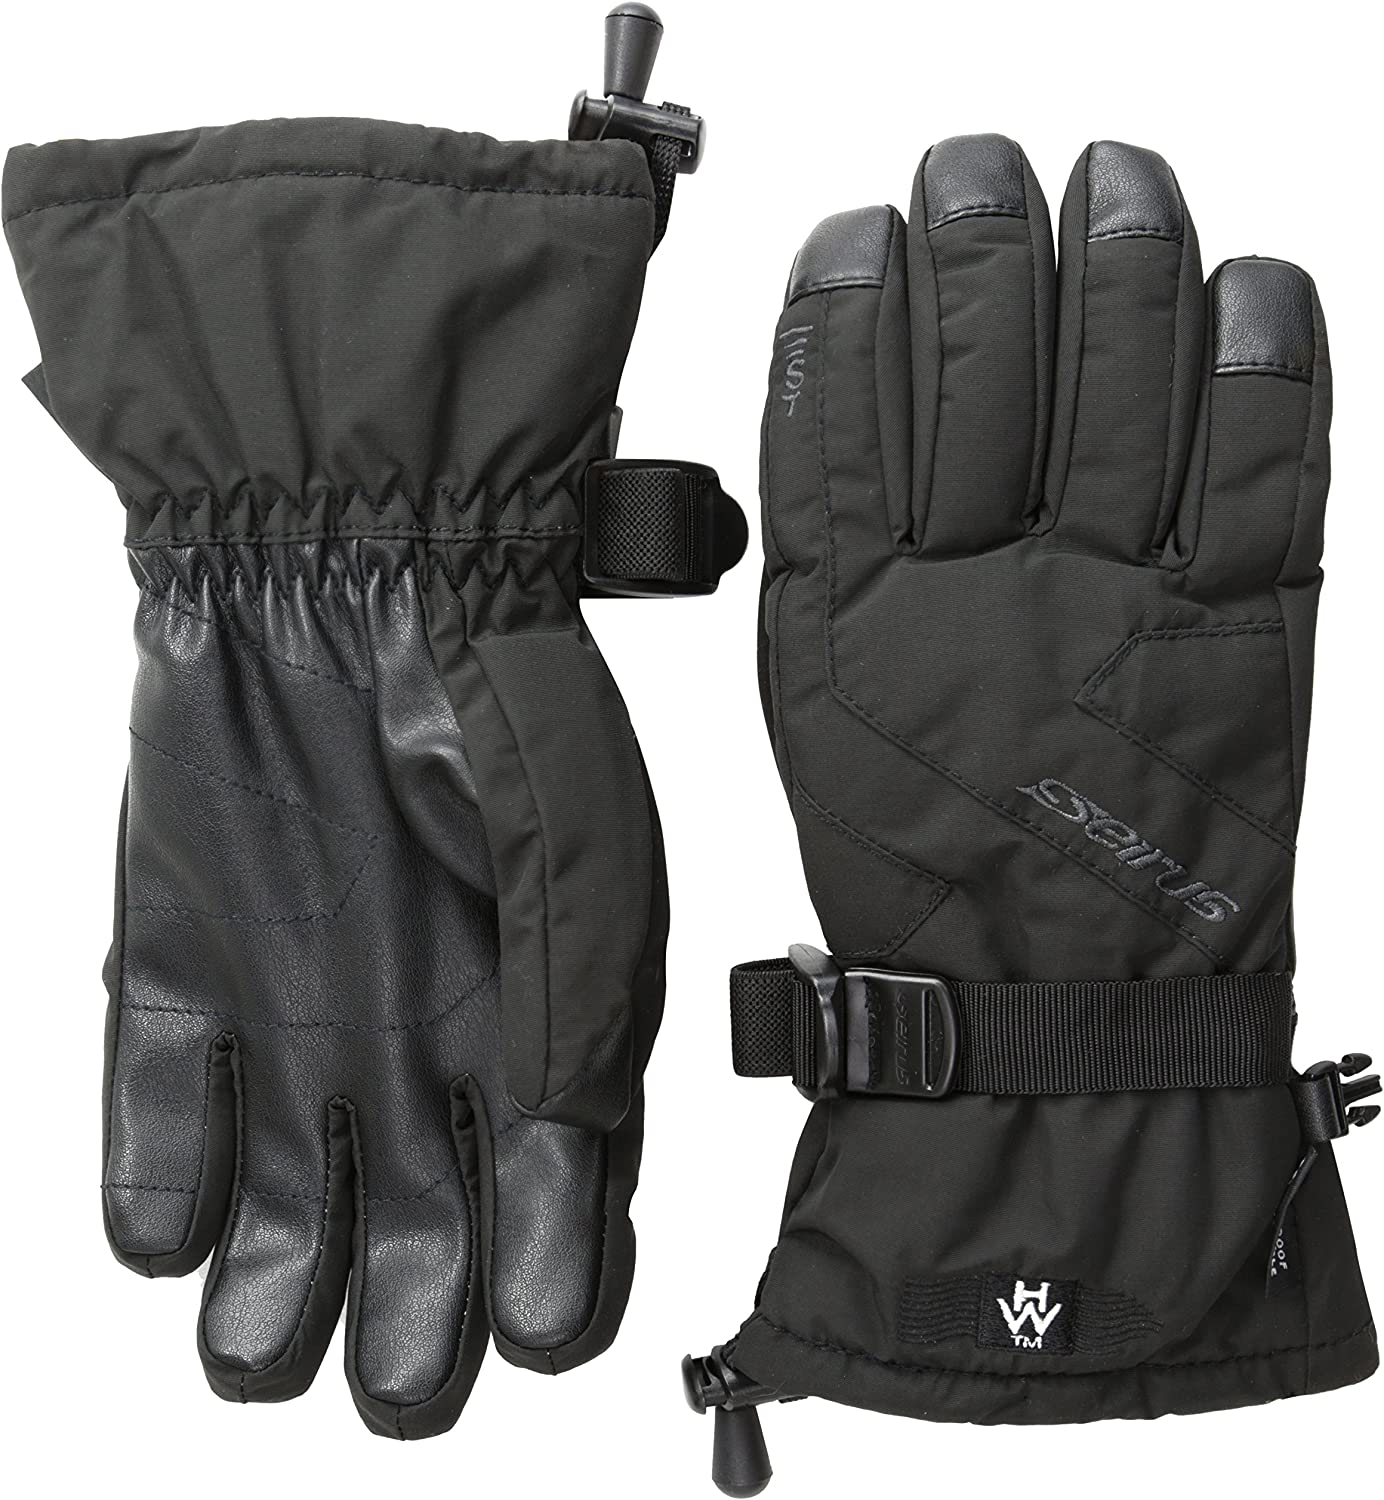 Seirus Innovation 1539 Heatwave Junior Ripper Child Kids Youth Winter Waterproof Glove with Soundtouch Texting Technology